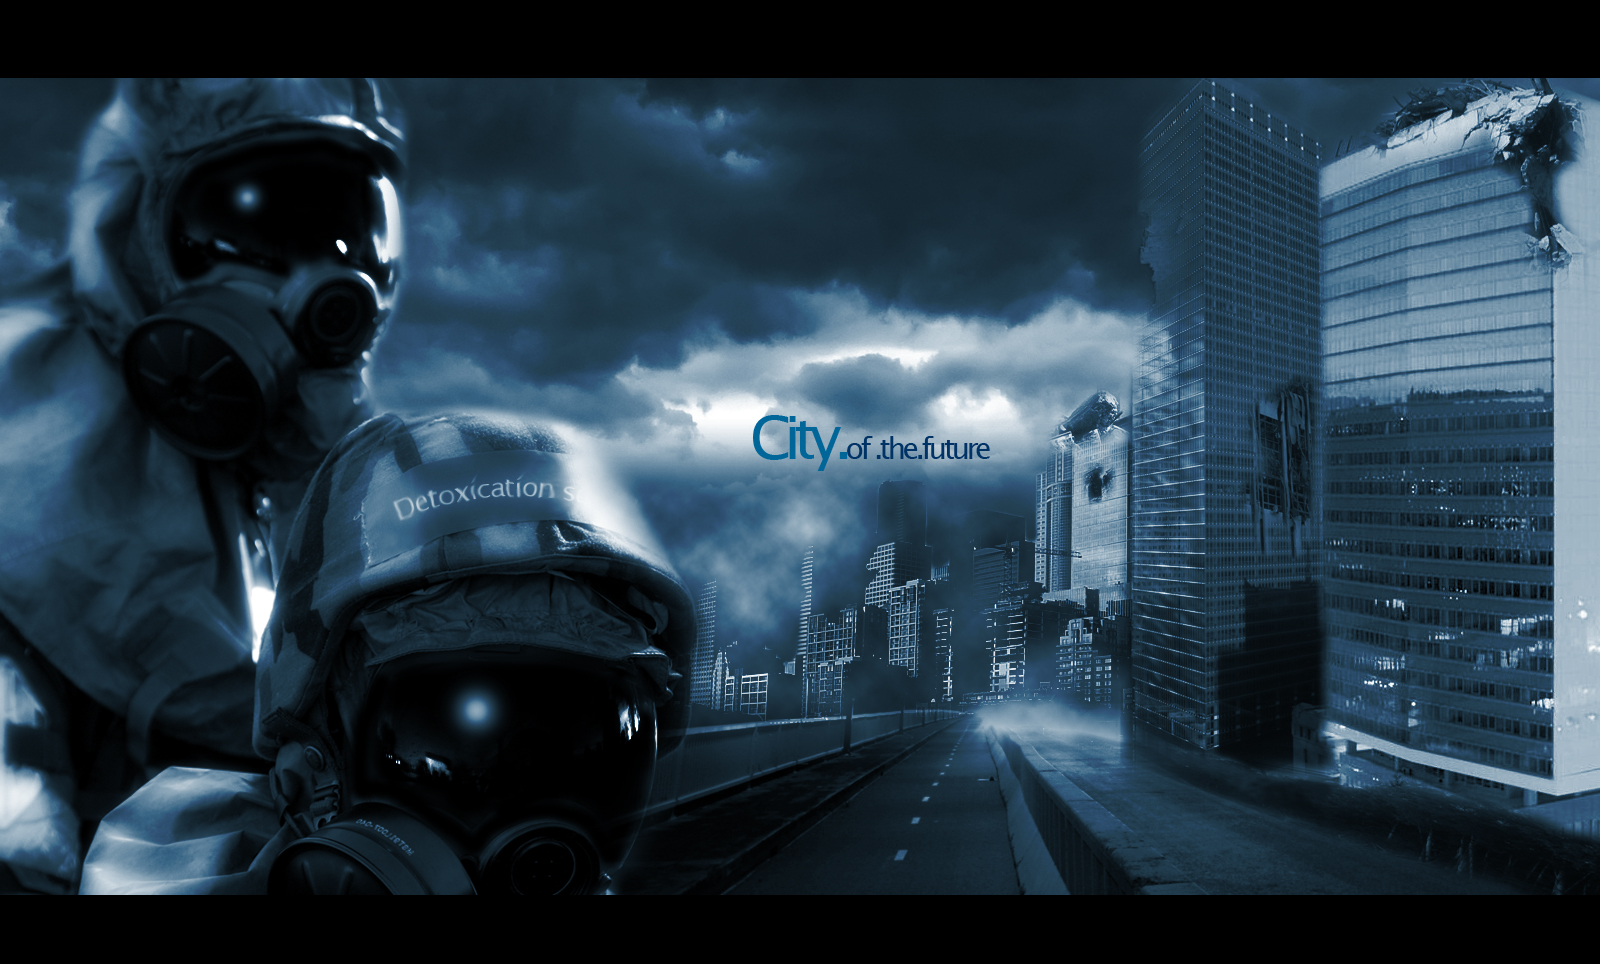 The city by gallumbits